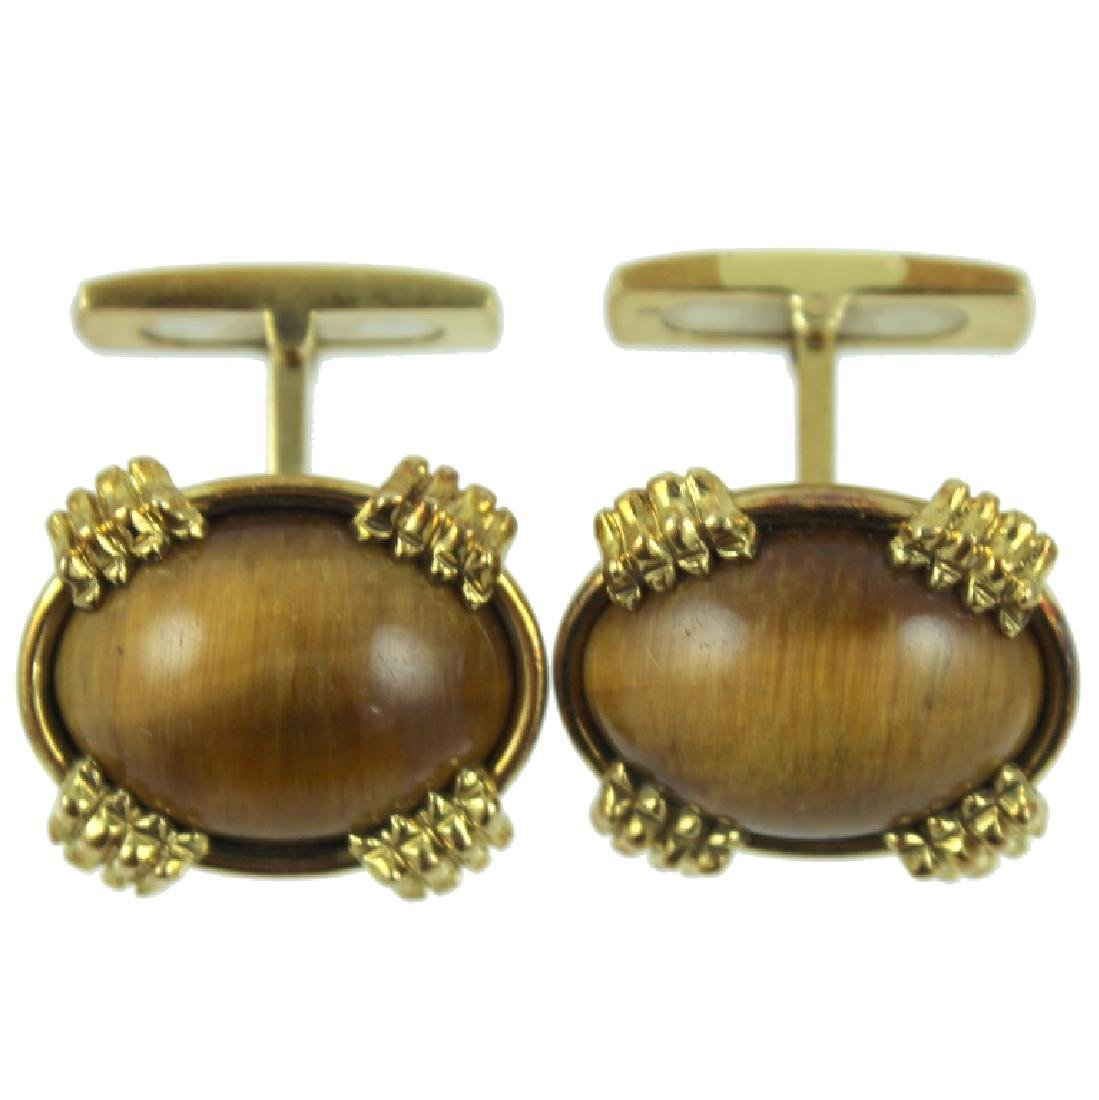 18K Fortunoff Tigers Eye Cufflinks.